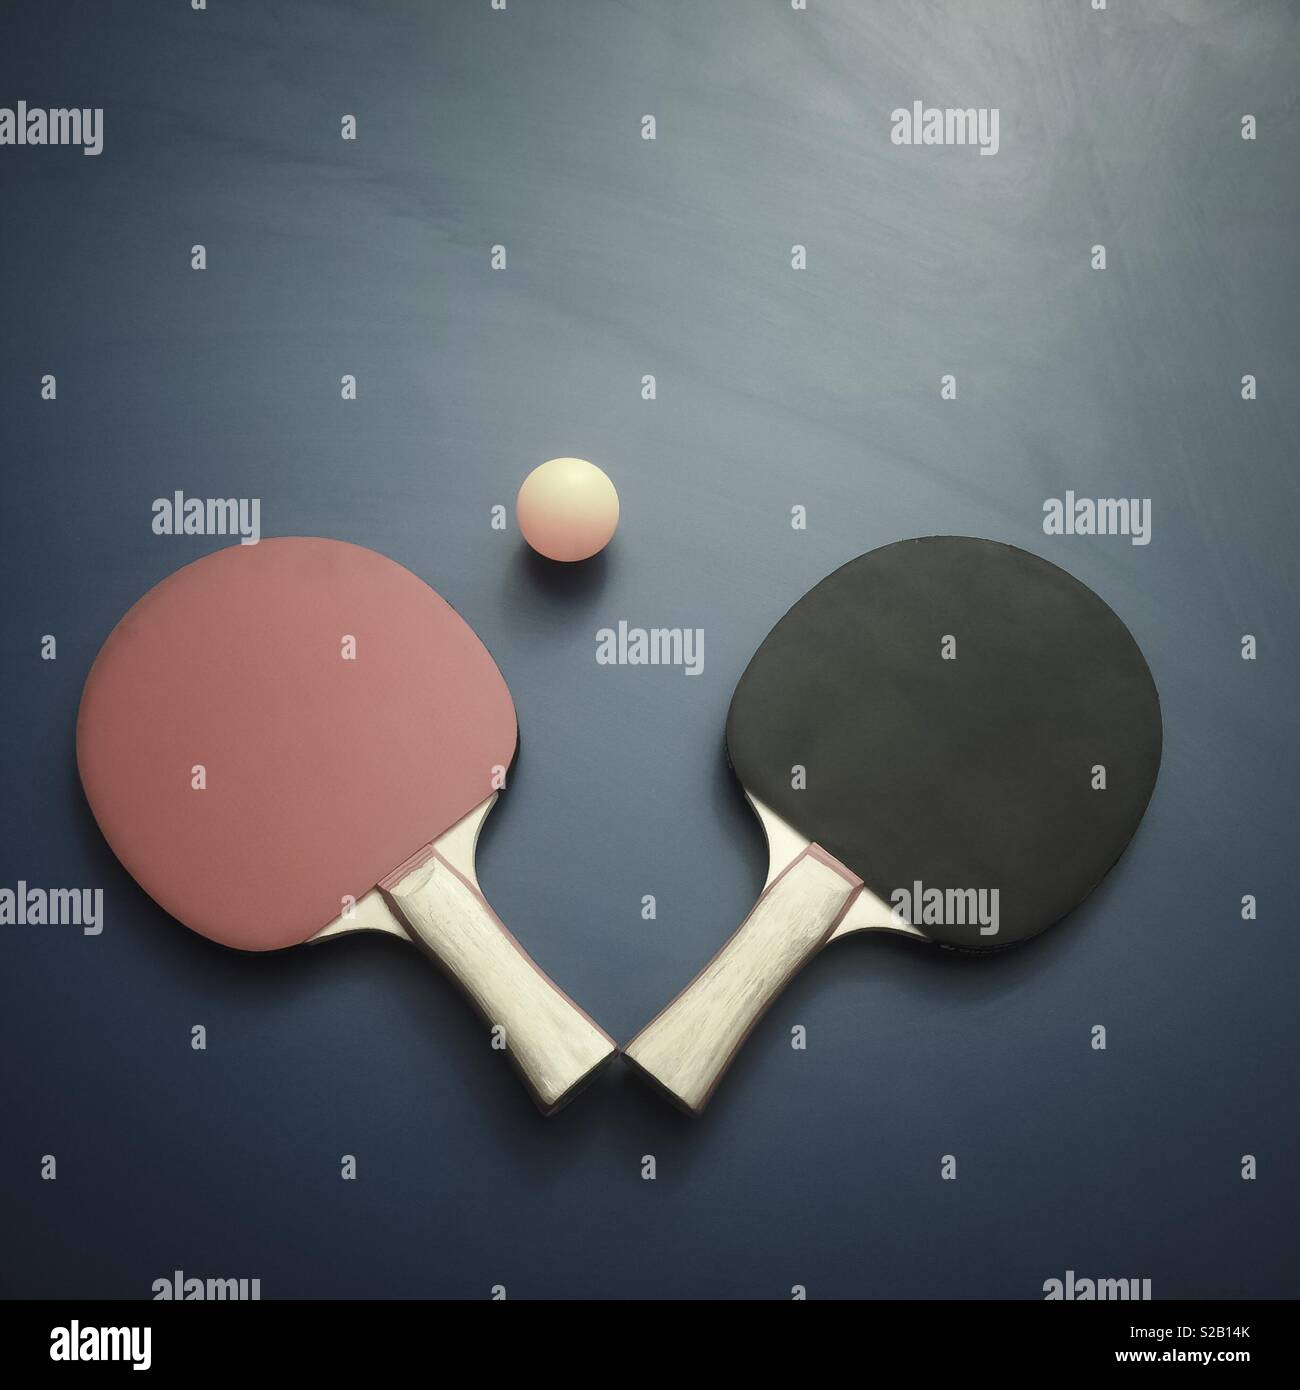 Creative photography of ping pong paddles and ball - Stock Image